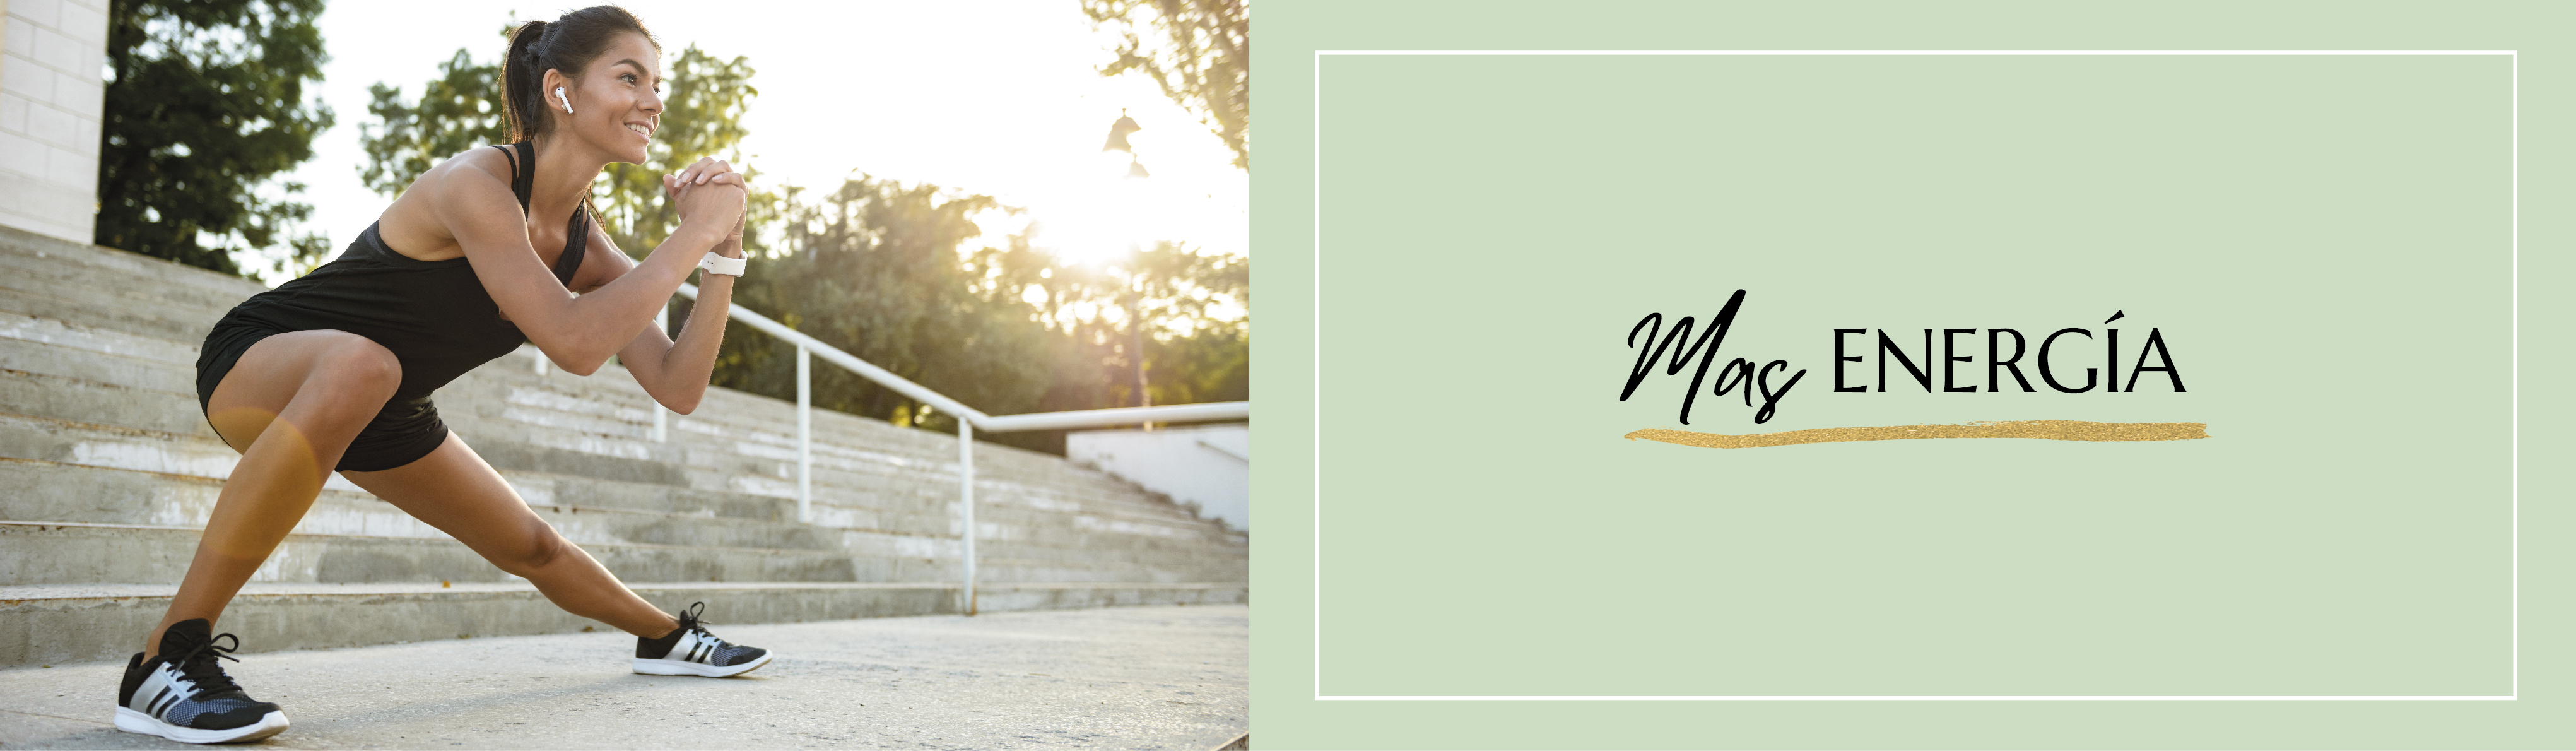 Eiralabs_Banner-web_Lifestyle-05